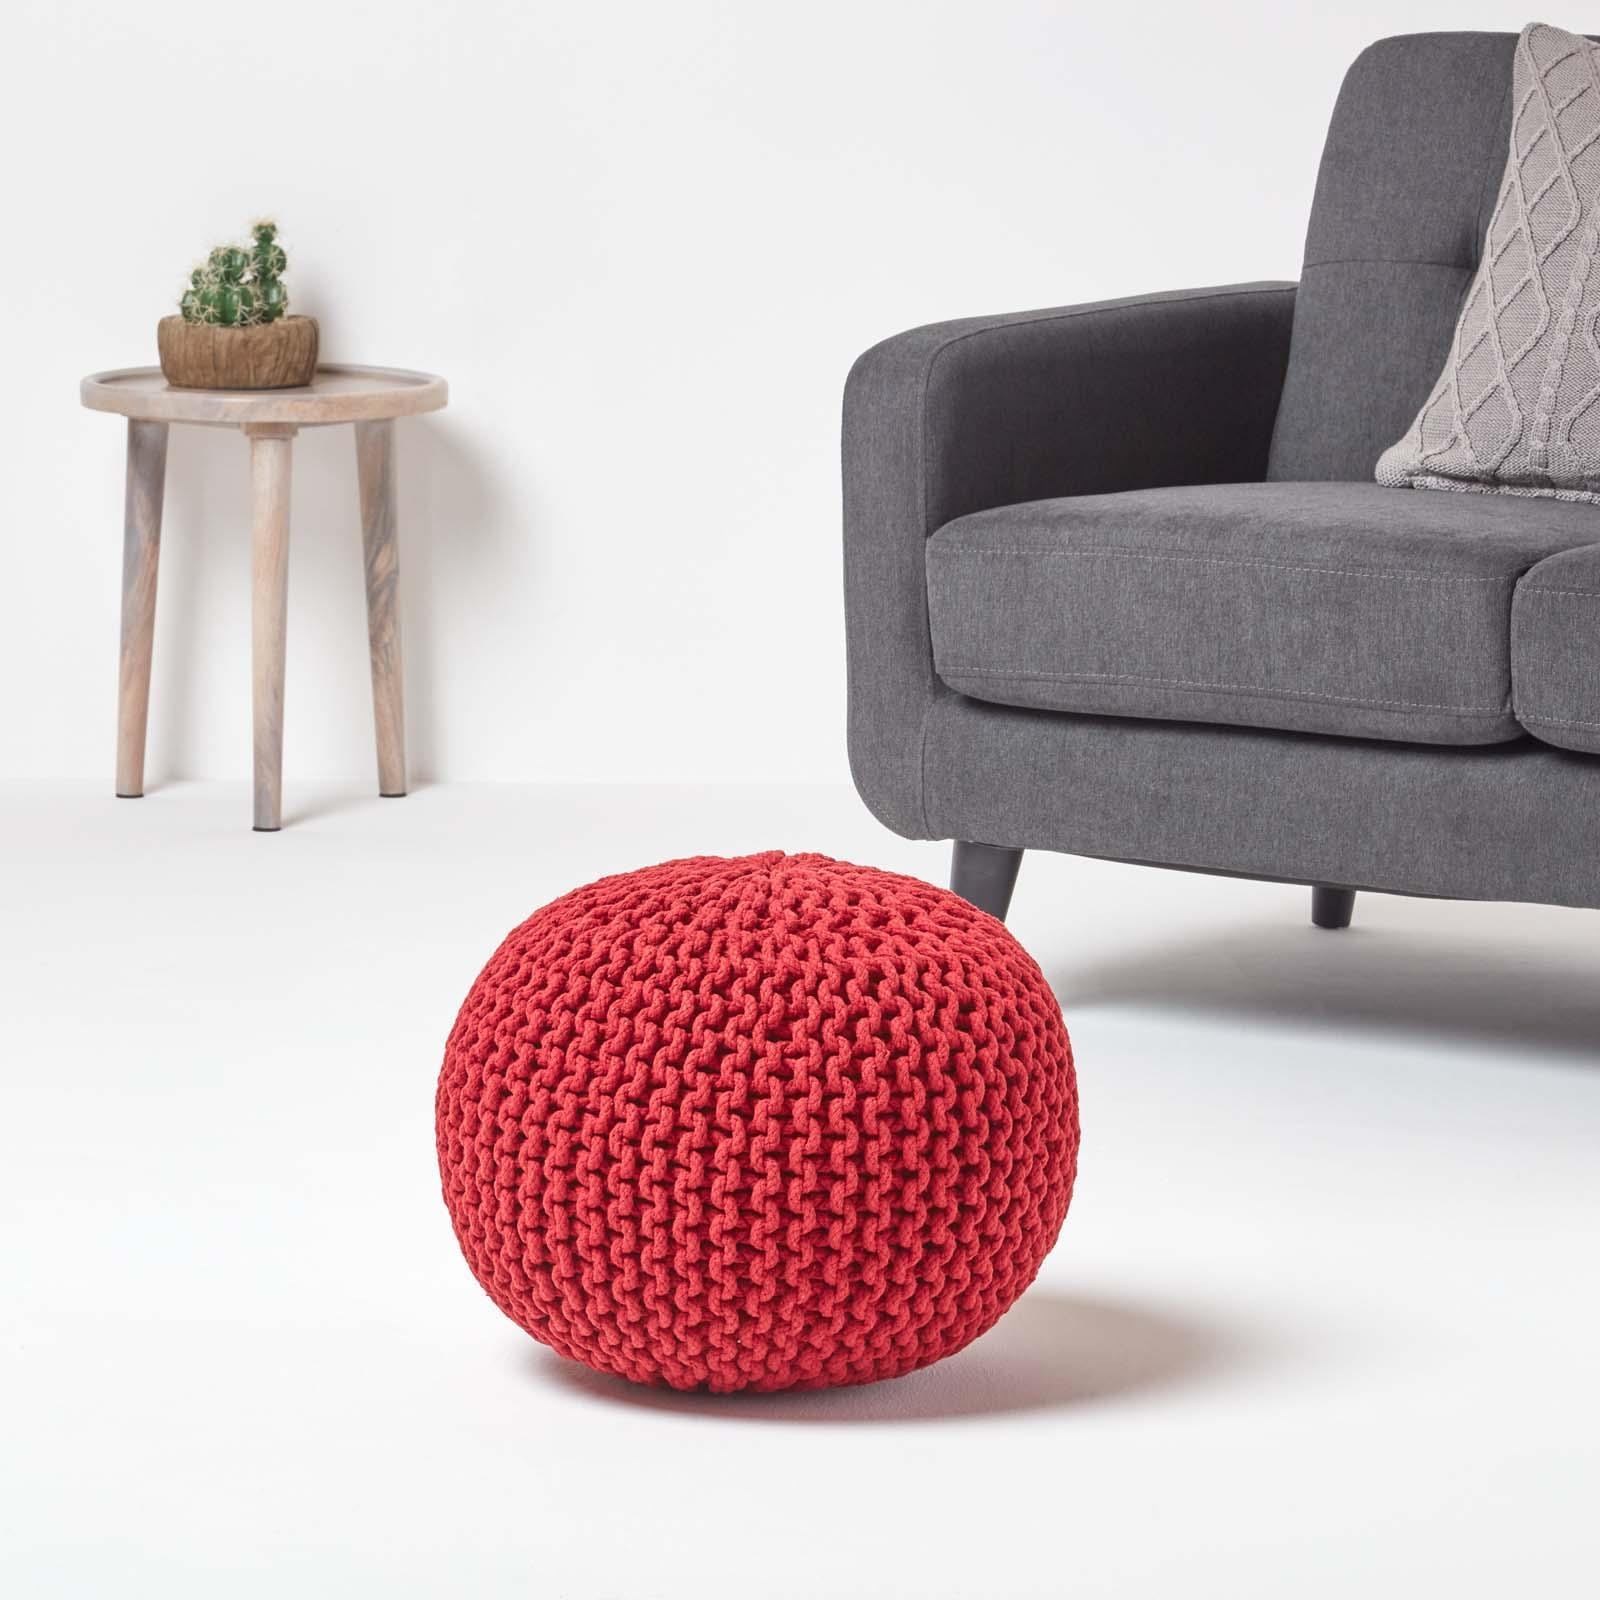 Hand-Knitted-100-Cotton-Pouffes-Round-Sphere-Or-Cube-Square-Chunky-Footstools thumbnail 171